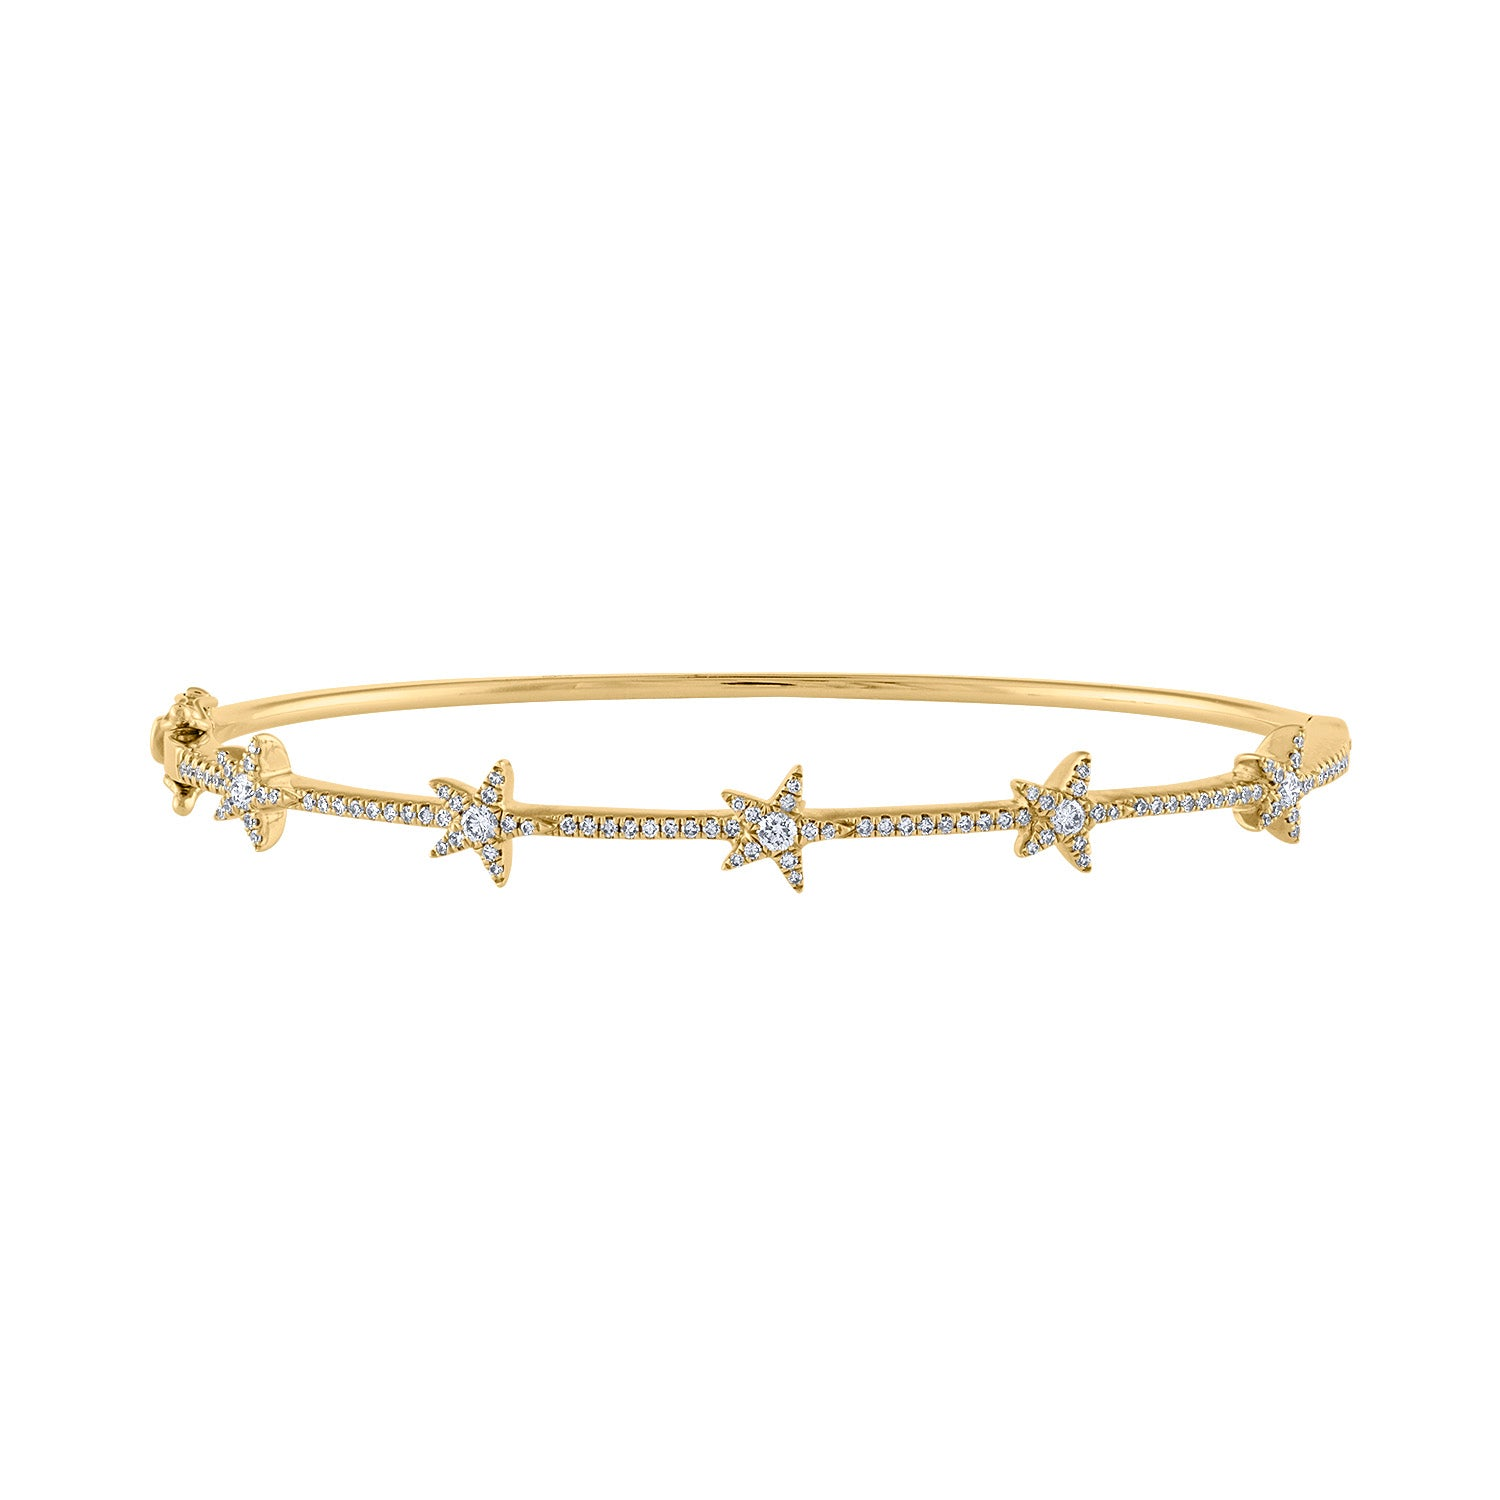 14K Yellow Gold many star diamond bangle